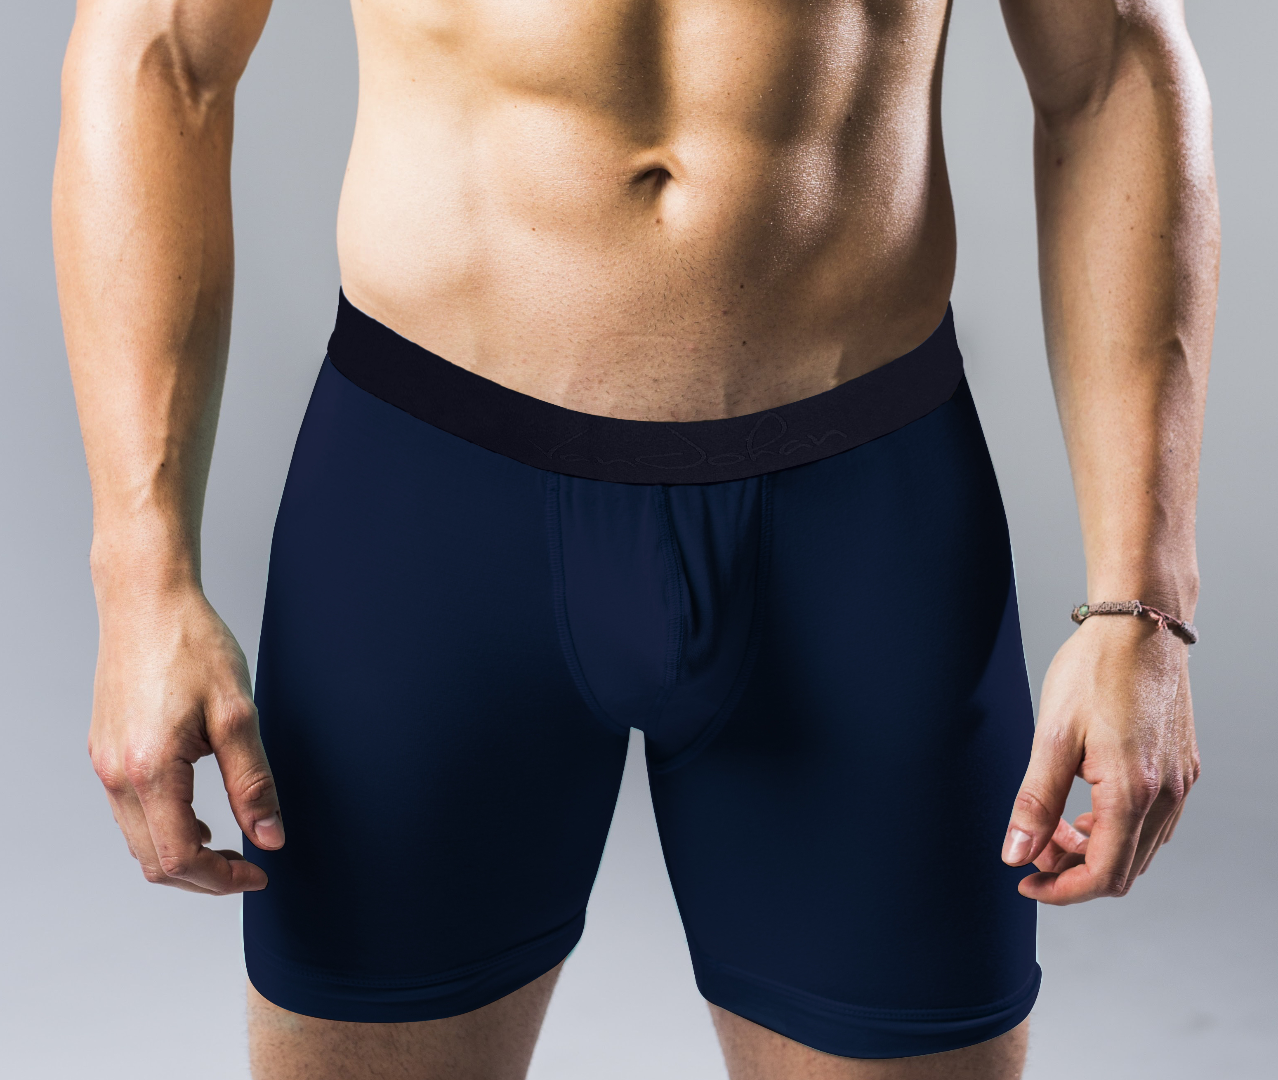 best underwear for working out